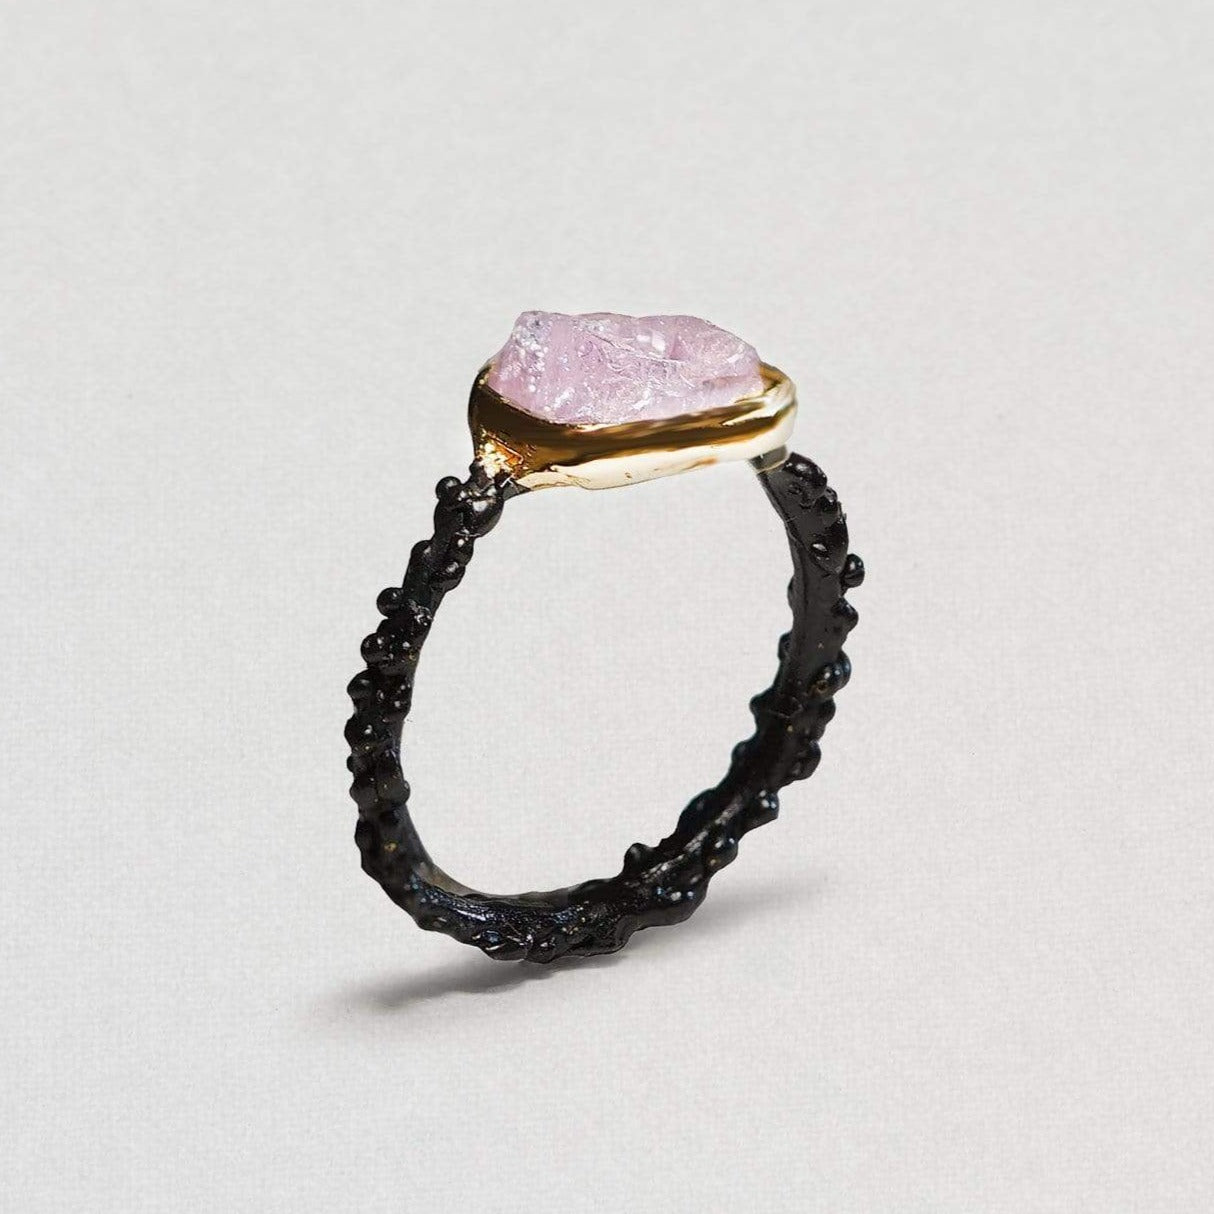 Nelida Ring, Anthracite, black, Gold, Handmade, Spinel, spo-disabled, StoneColor:PastelColor, Style:Delicate, Type:BlackAnthracite, Type:StoneCandyDelicate Ring